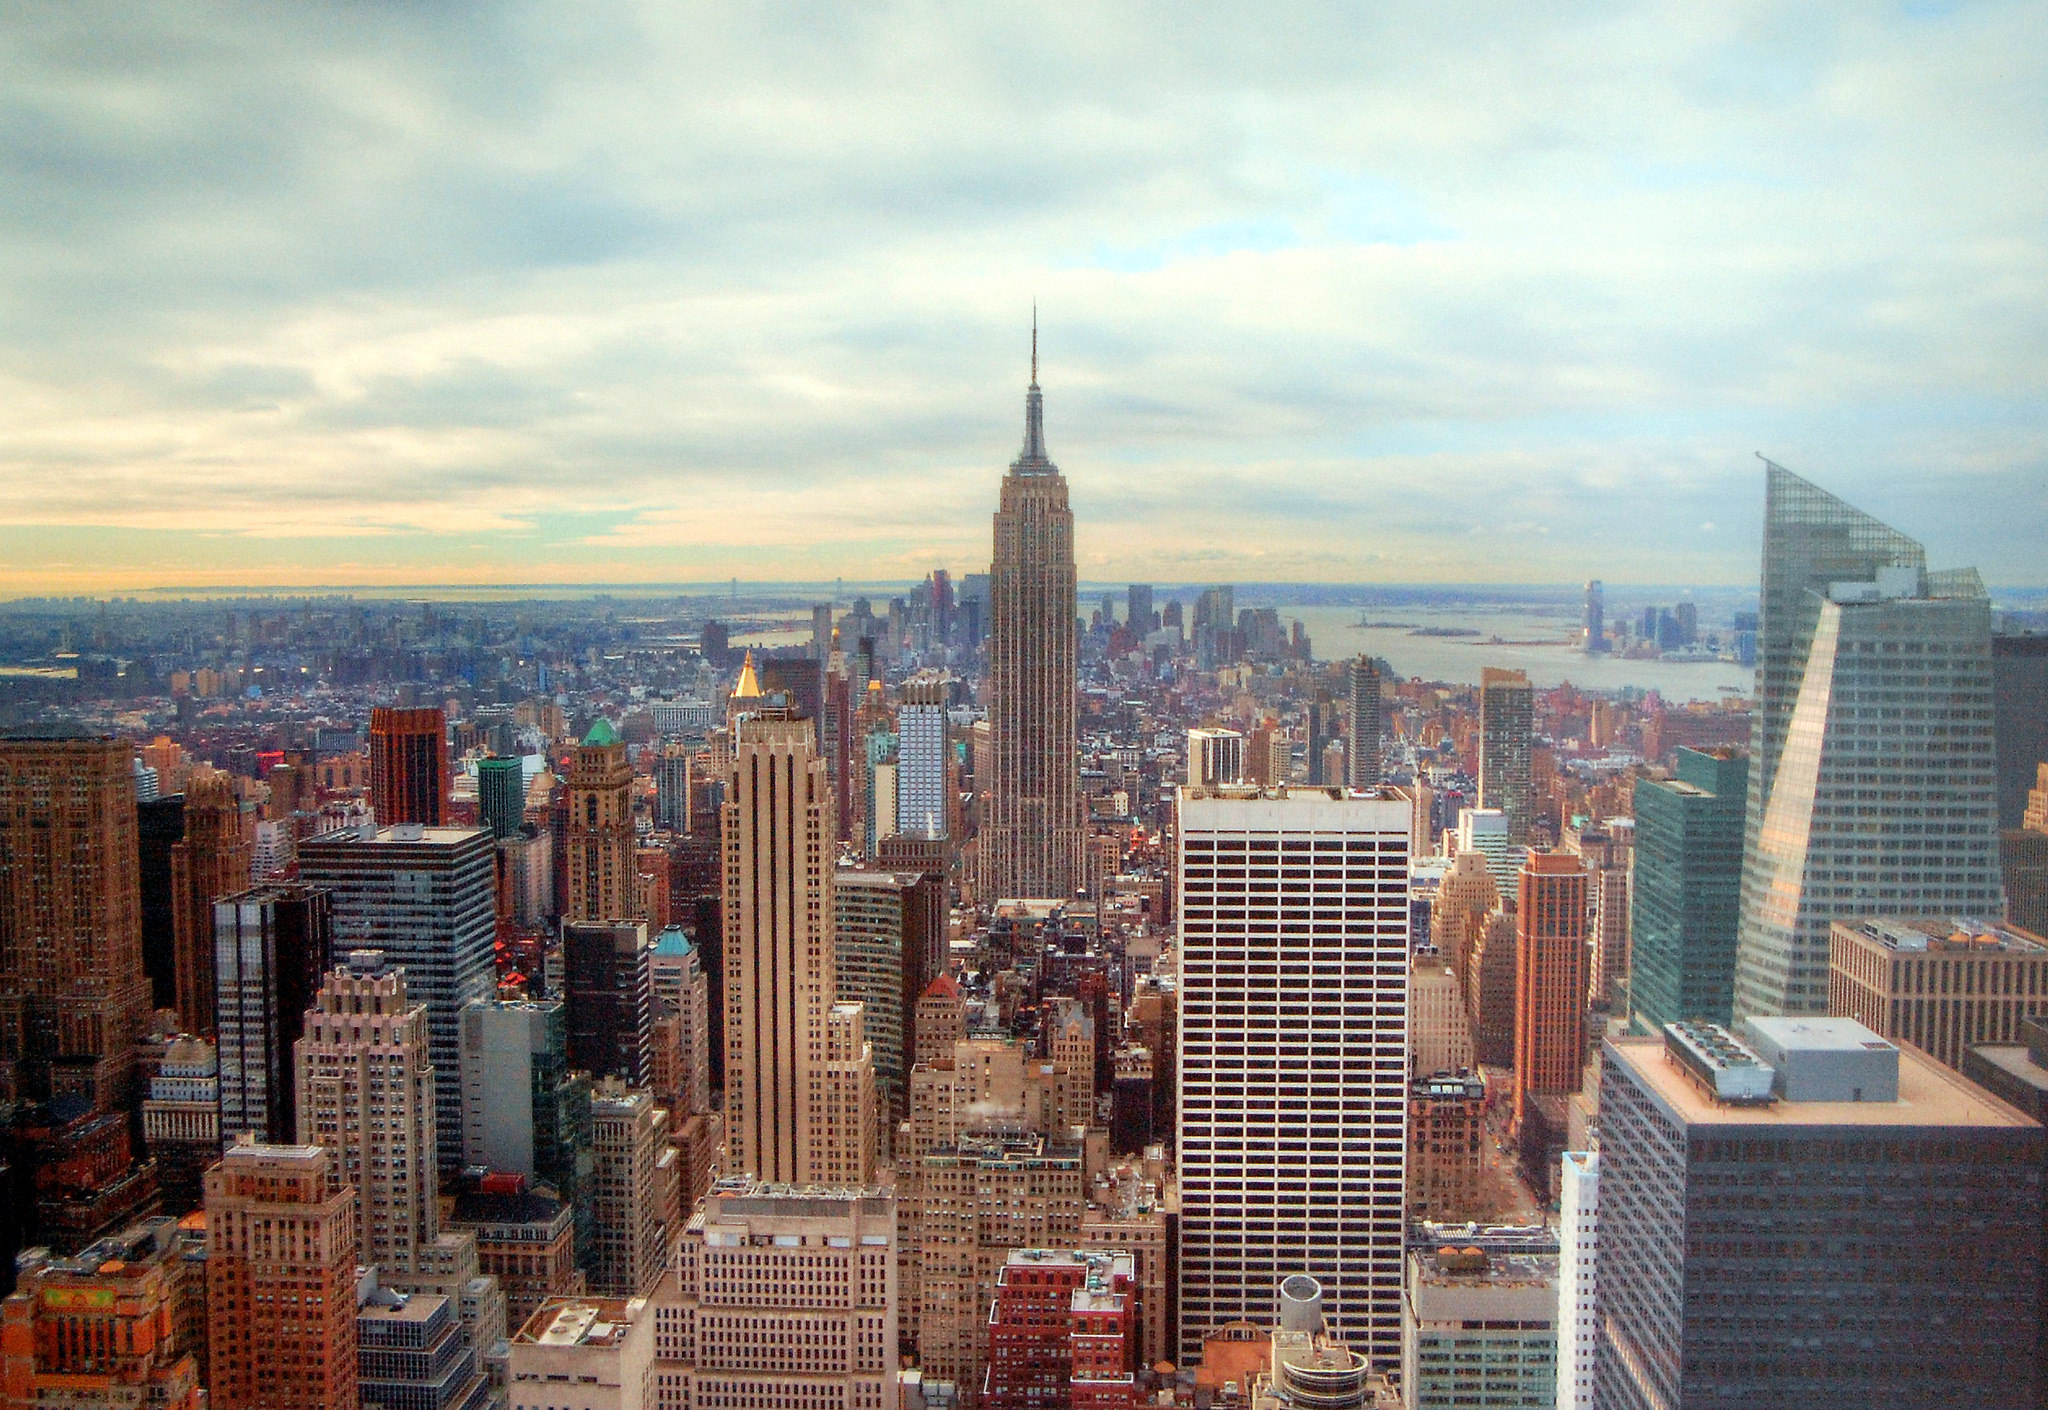 Tourism in NYC hit an all-time high in 2017